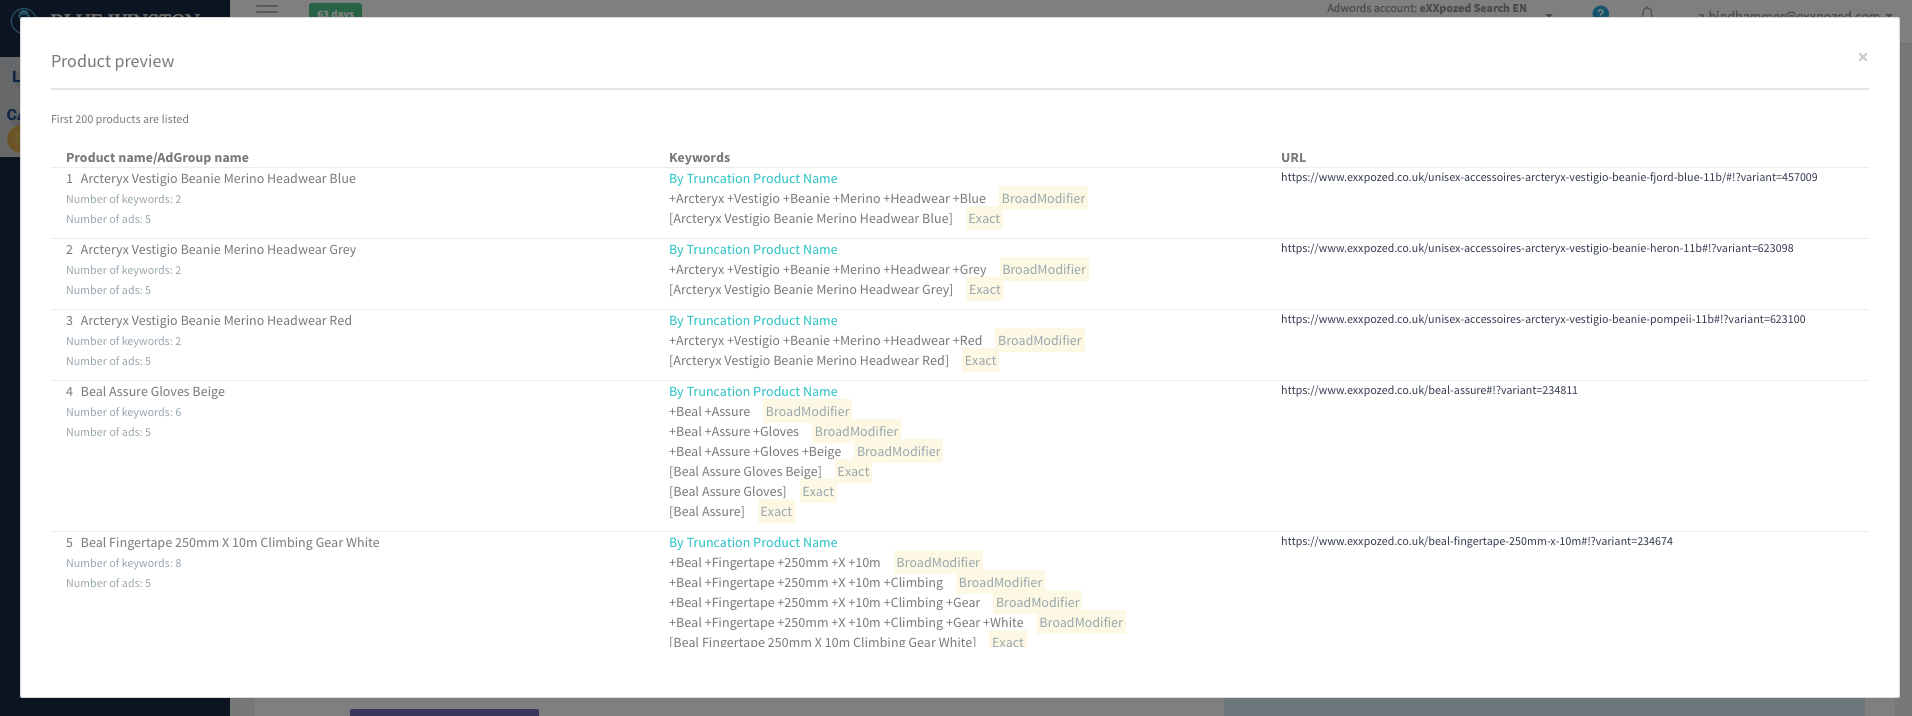 Utilize AdGroups & Keywords preview mode for first 200 products within the campaign